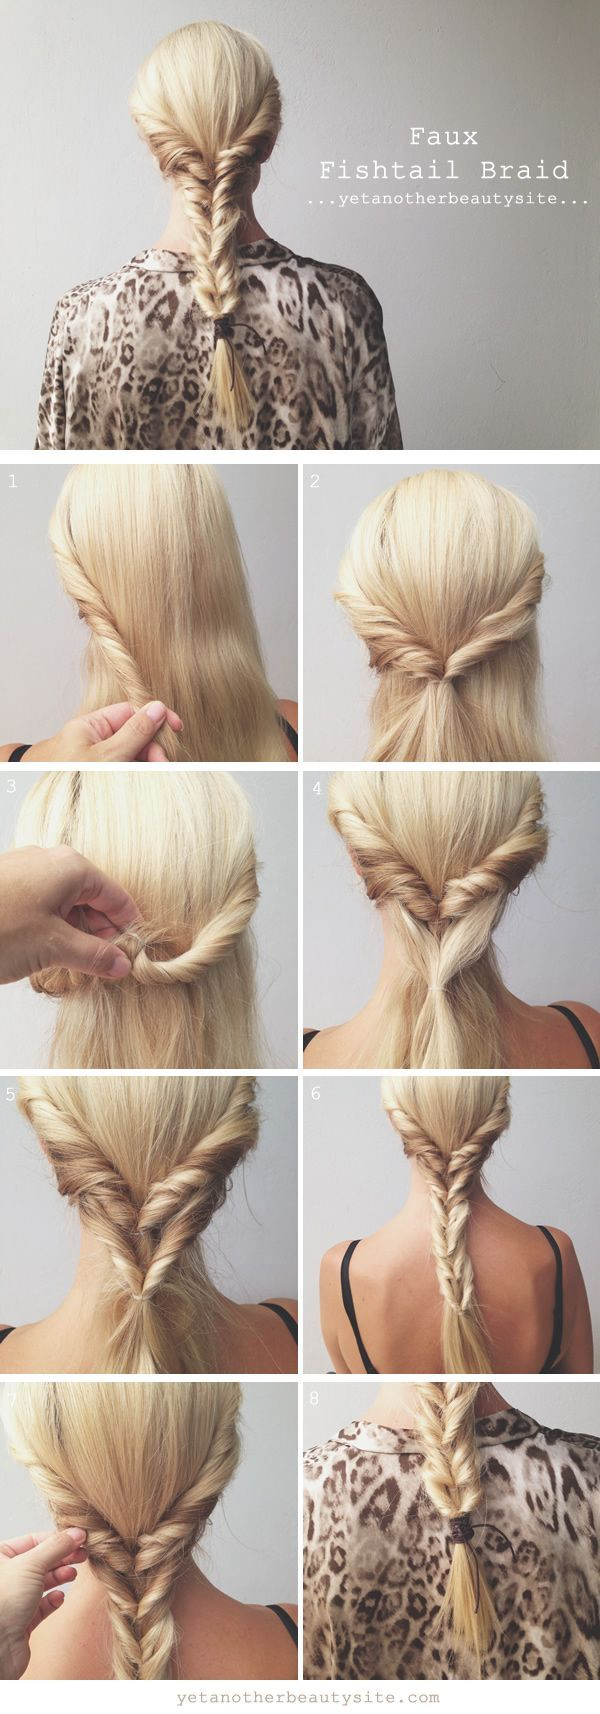 braid tutorial howto DIY hairstyle hairdo